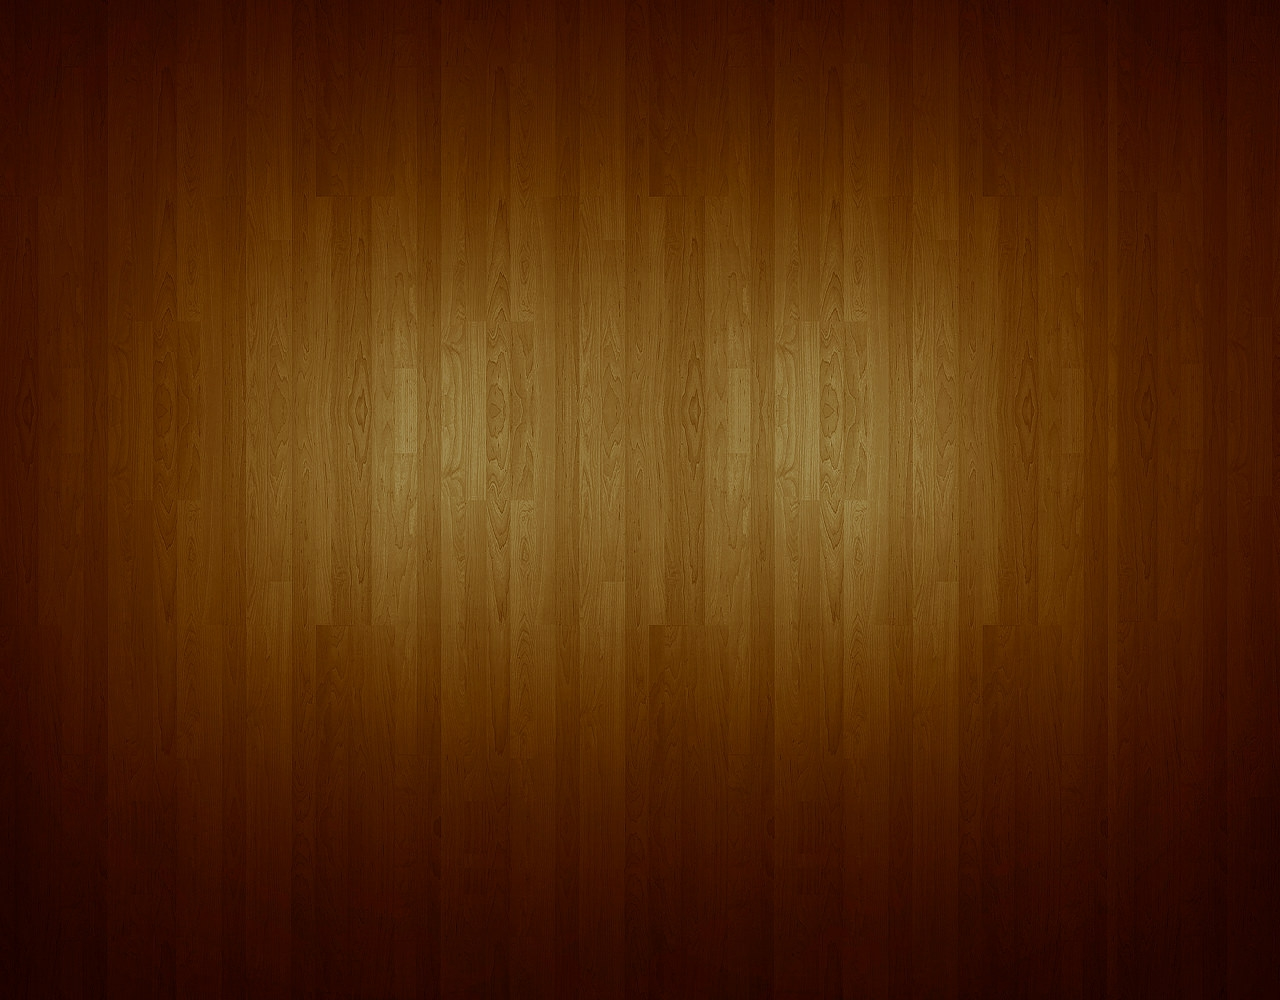 HD Wood Plank Wallpaper Background